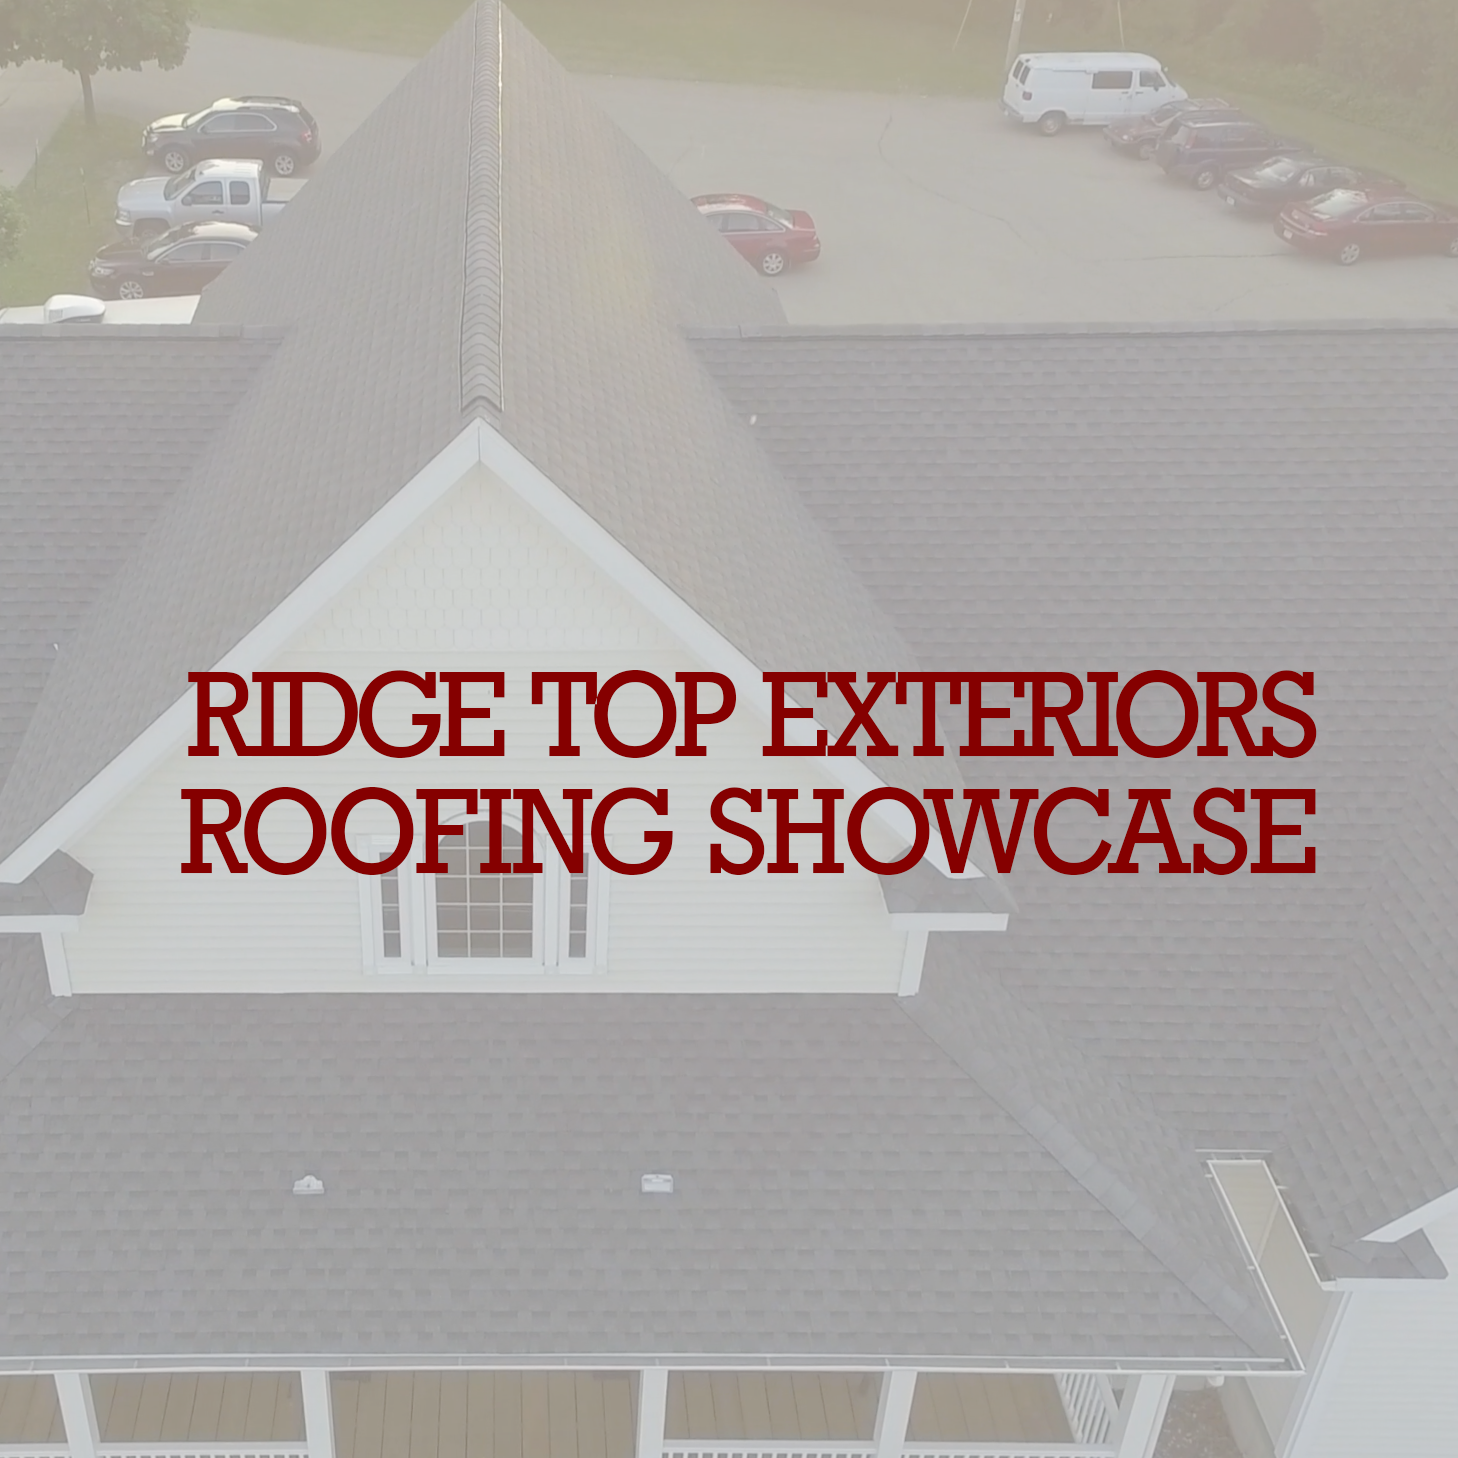 Roofing showcase featured image